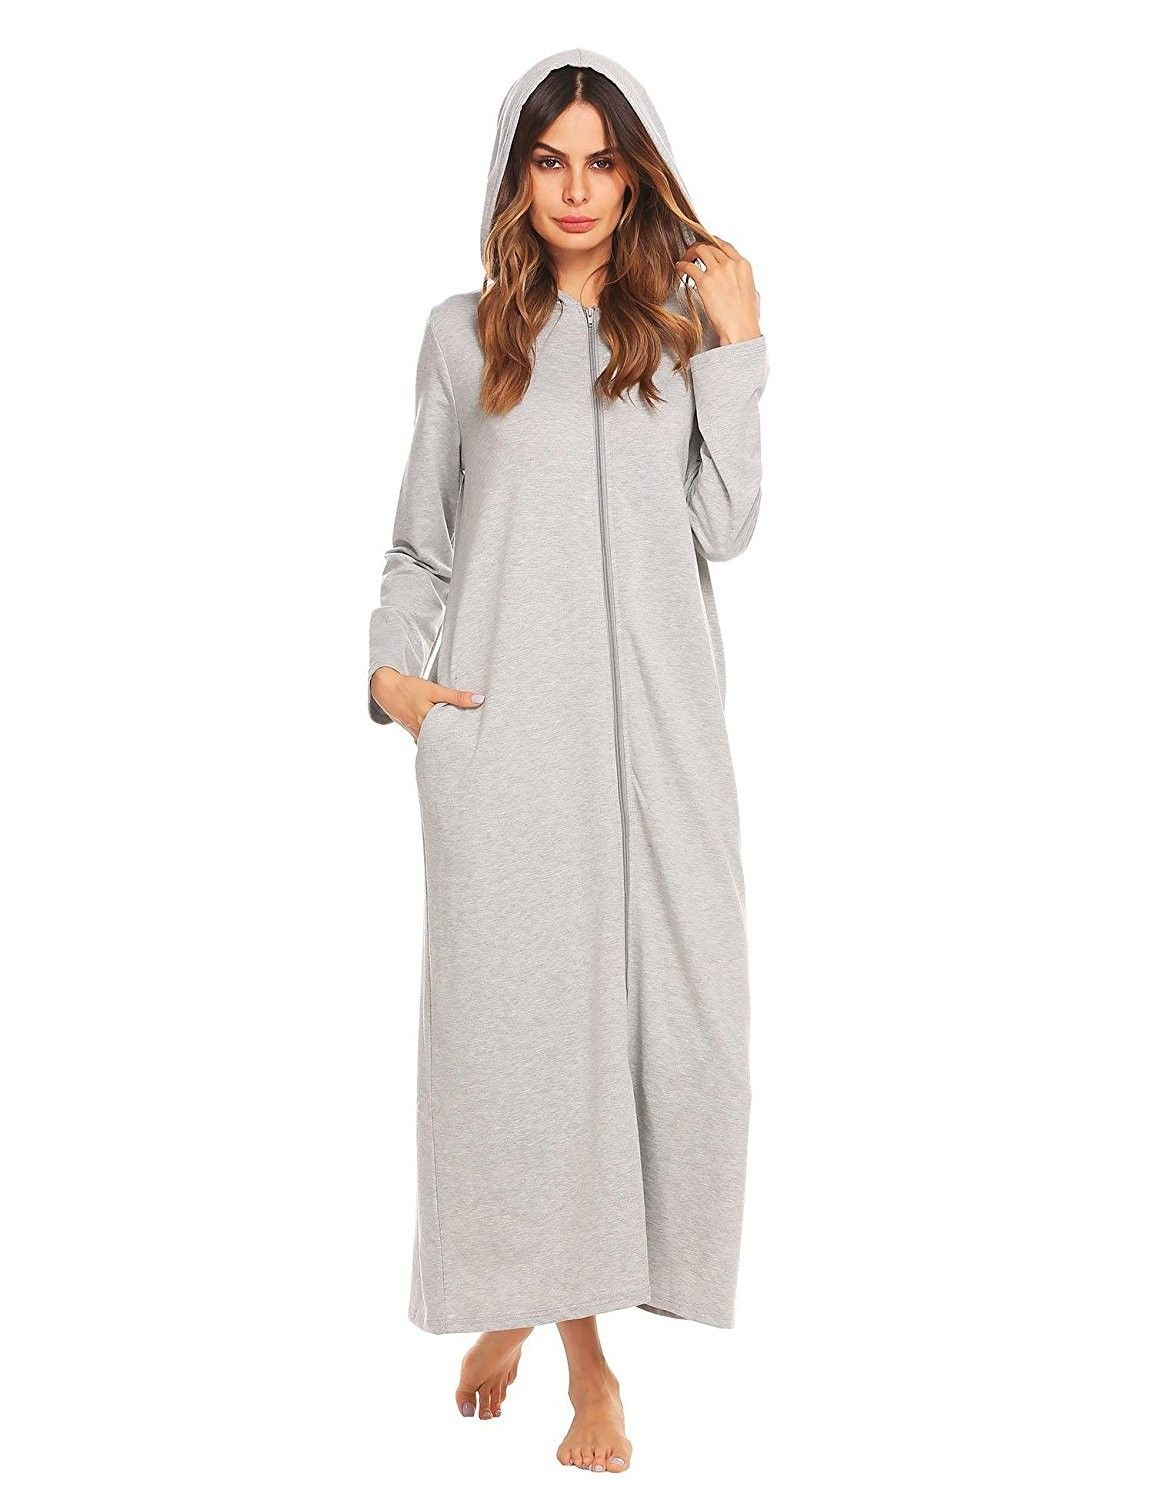 990bdd11d979 Women s Full Length Zip Robe Long Sleeve Hooded Bathrobe S-XXL - Grey -  CC187W6KGI4